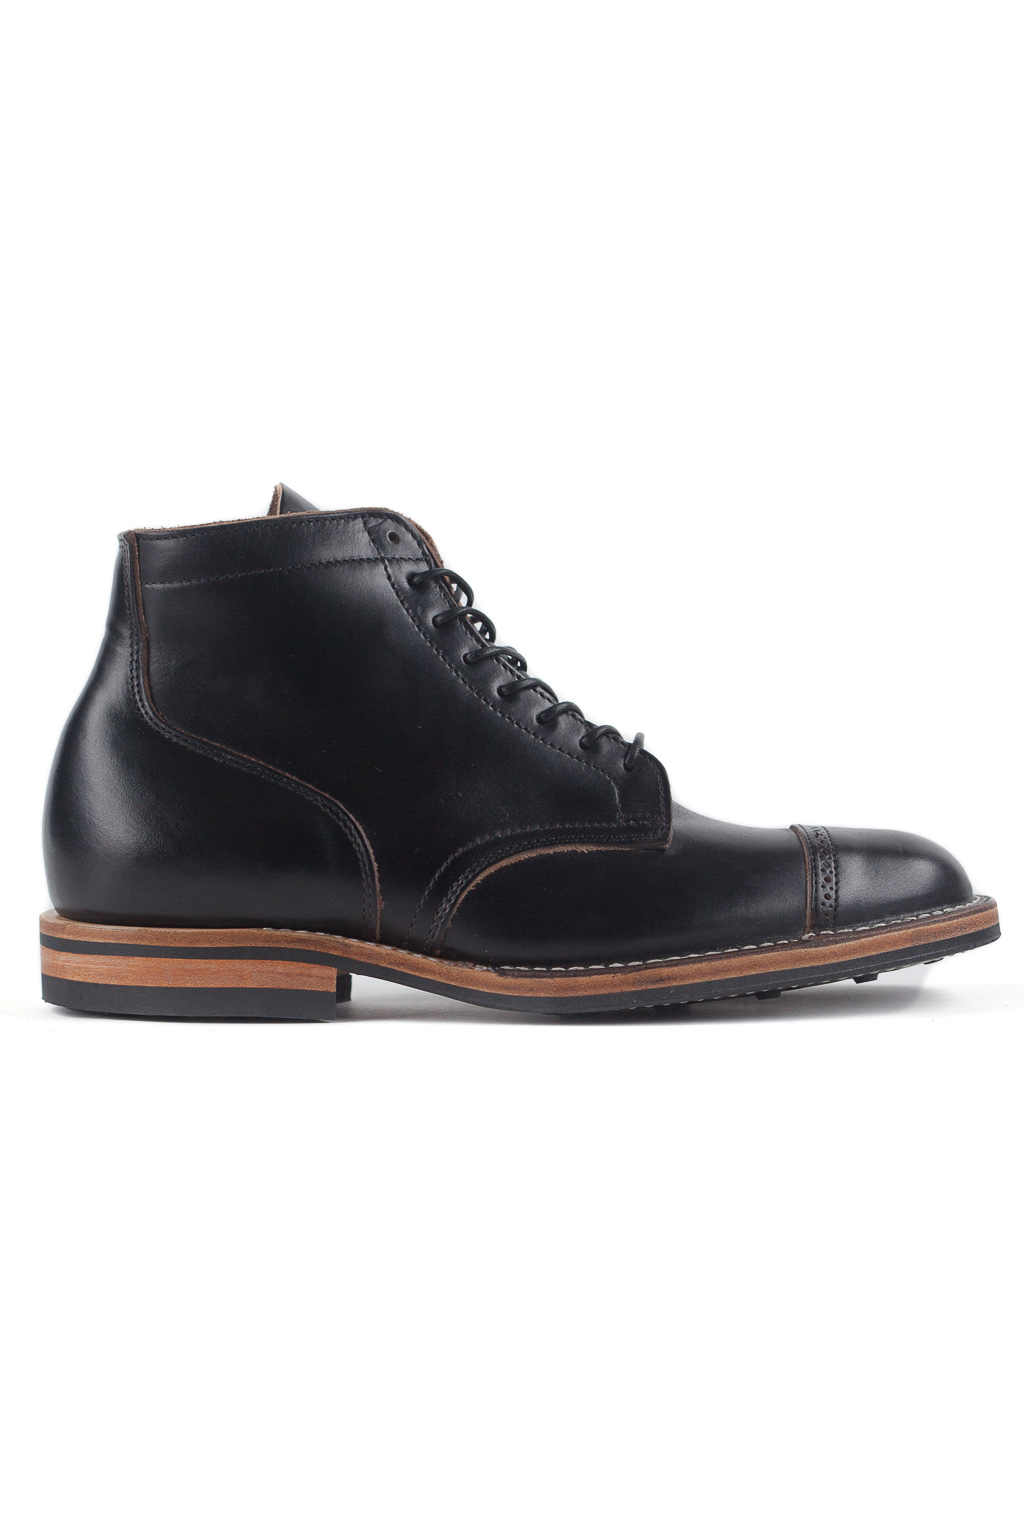 Service Boot - Black CXL